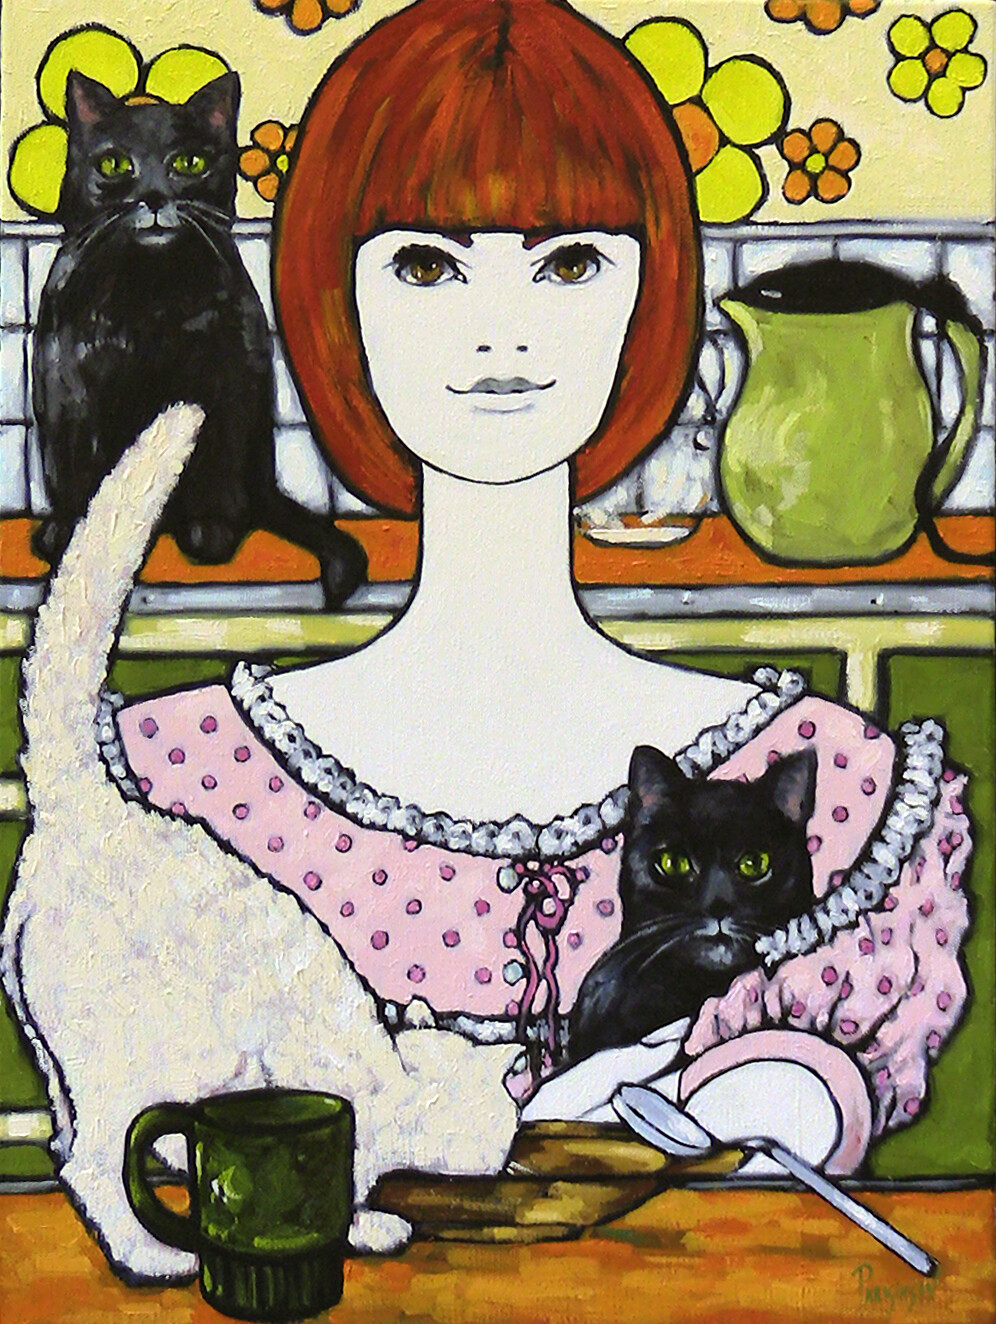 Crazy Cat Lady - Original Artwork Oil on Canvas